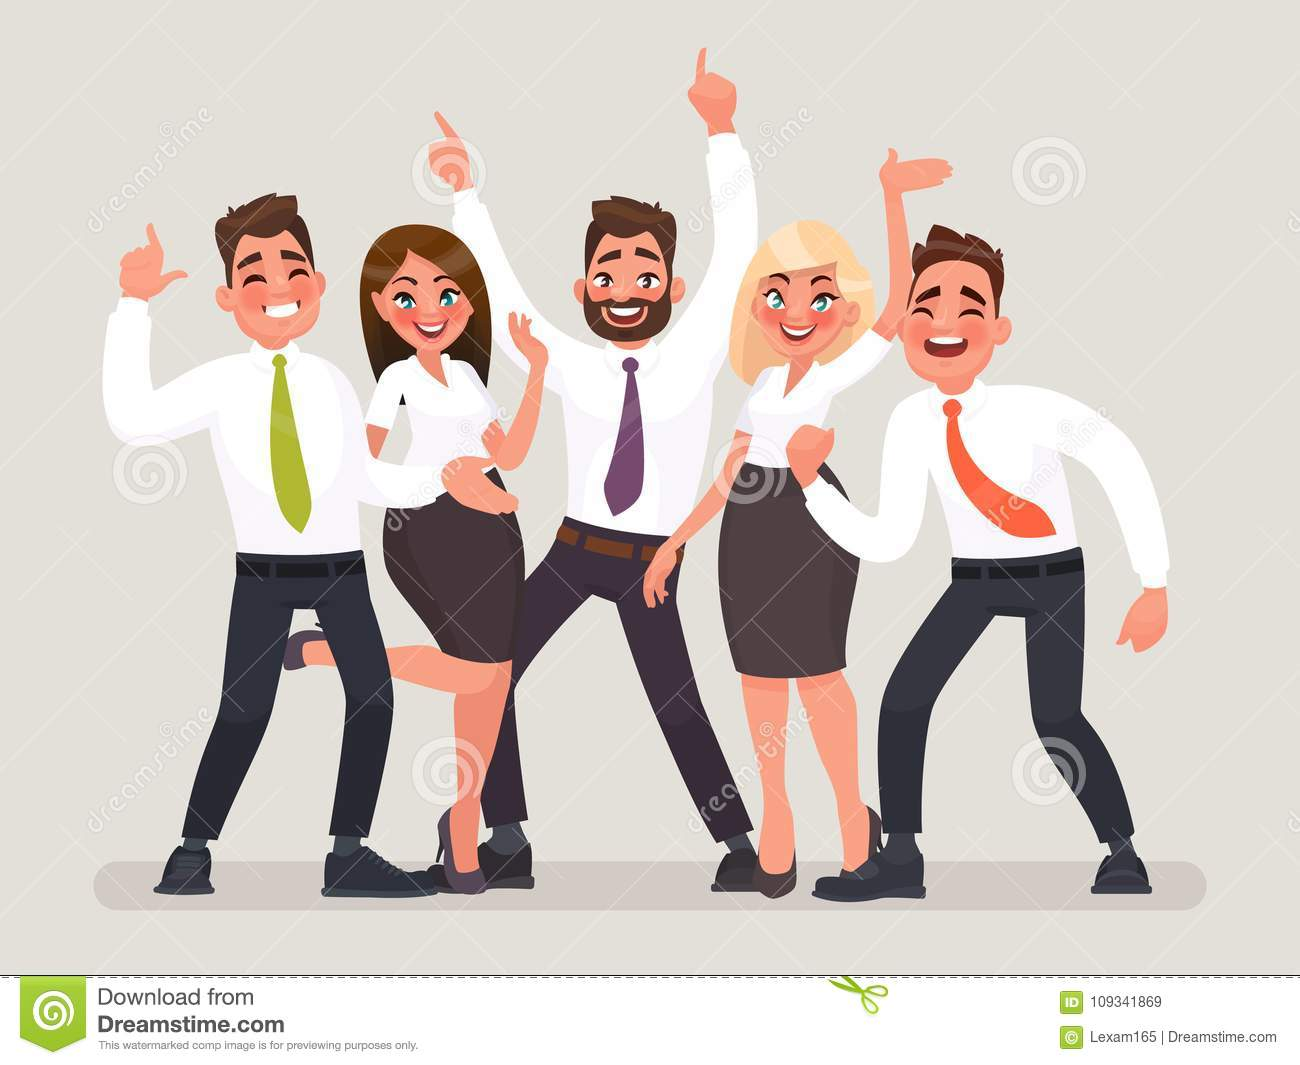 Successful business team. A group of happy office workers celebrating the victory